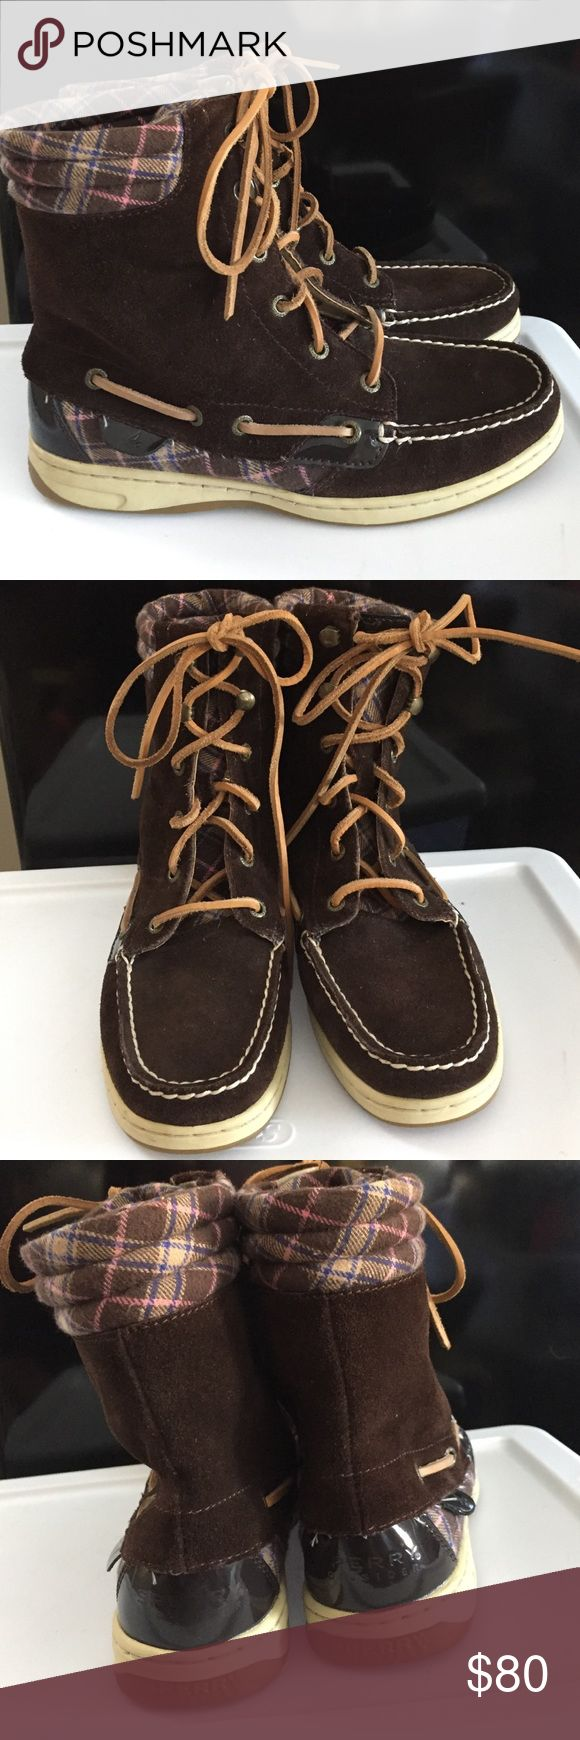 Sperry Top-Sider Boots NWOT Brand new! Only tried on! They are comfy but they never seem to make it out my closet. The size is 7M. Willing to drop price to $60 so that you can get reduced shipping 😊 Box not included. Sperry Top-Sider Shoes